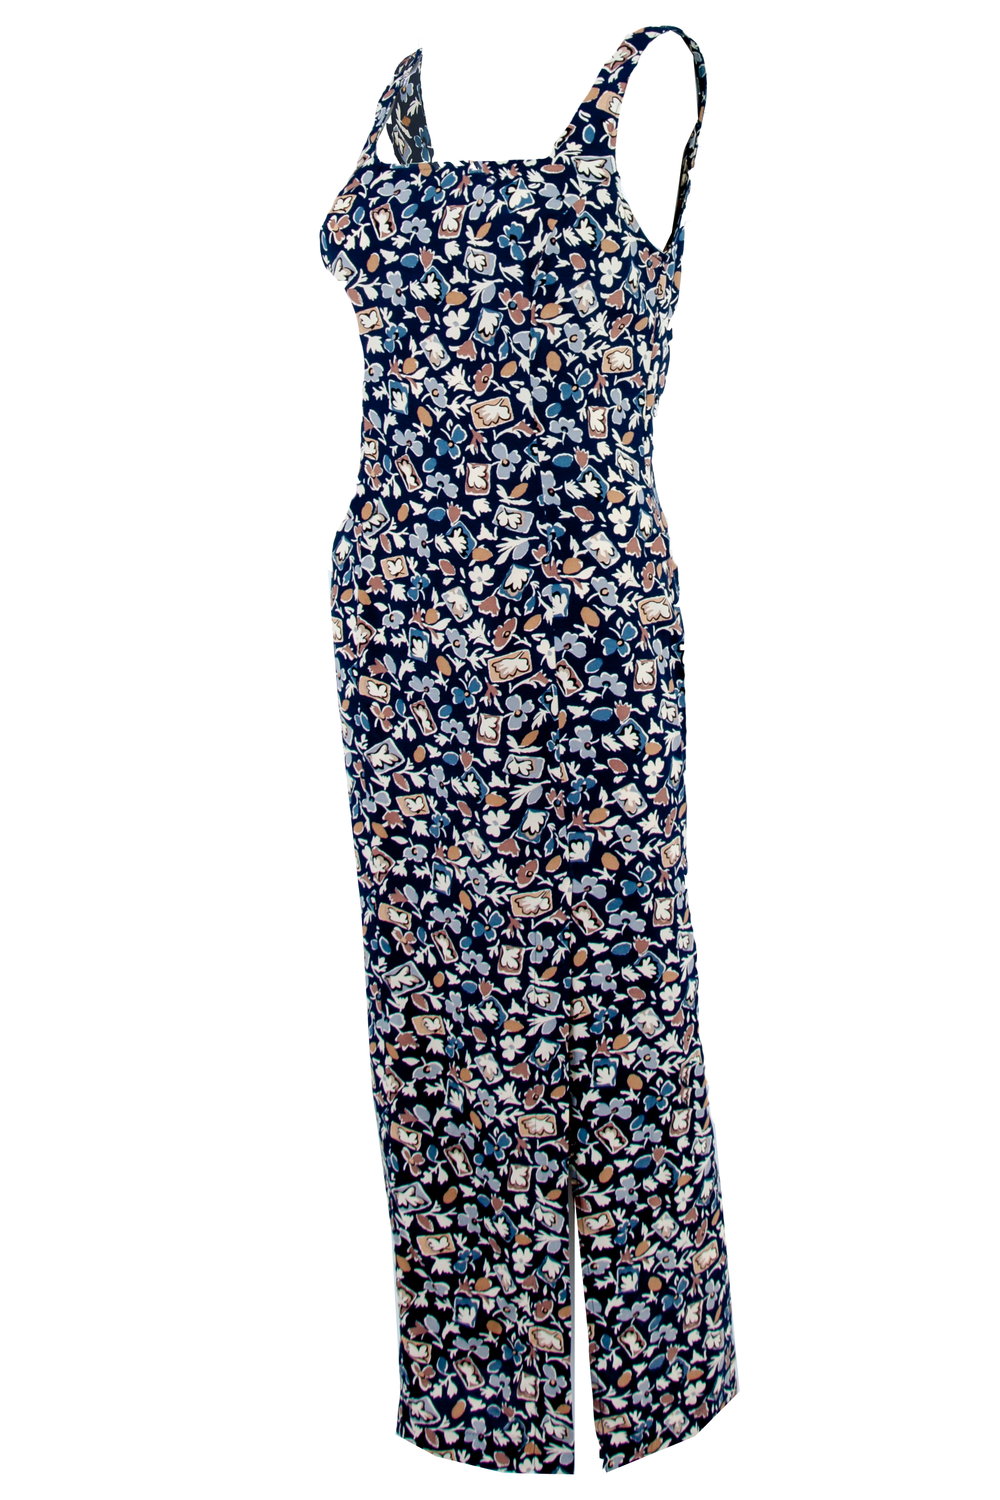 vintage sleeveless navy maxi dress with floral print and slit at side.